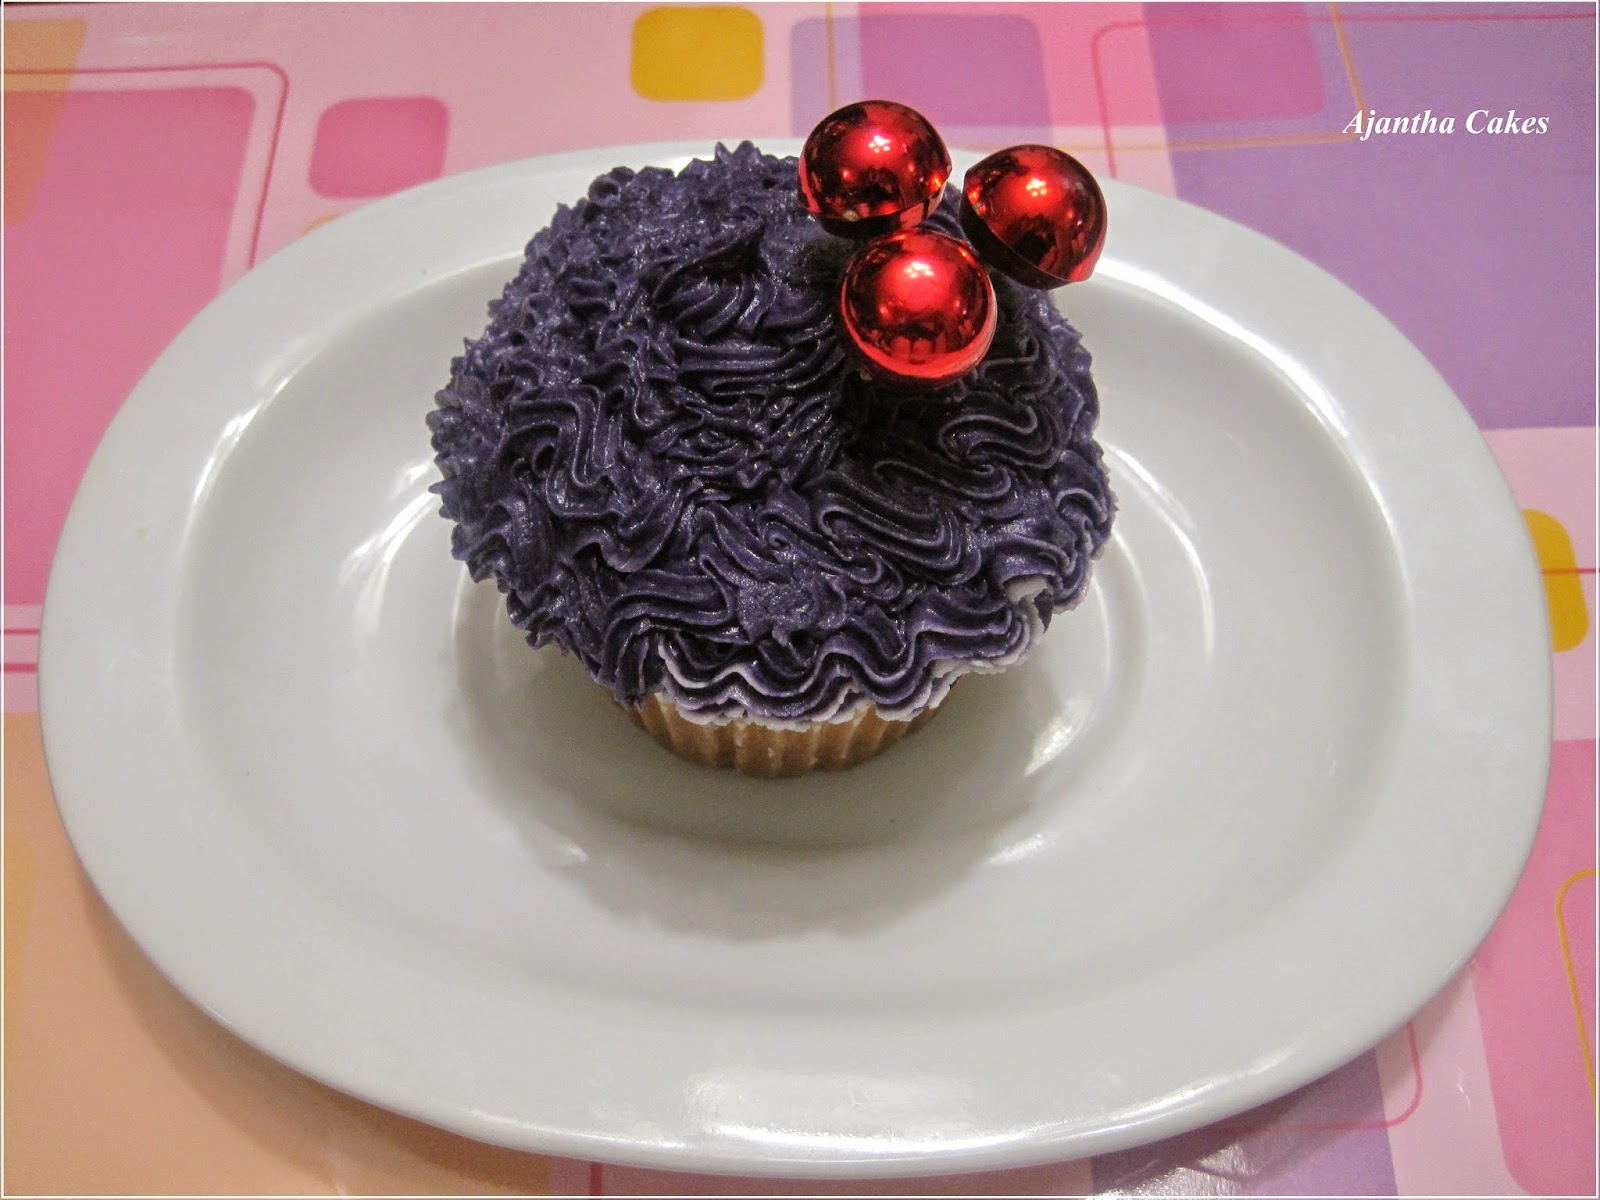 Ajantha Cakes/Holyday Cupcakes